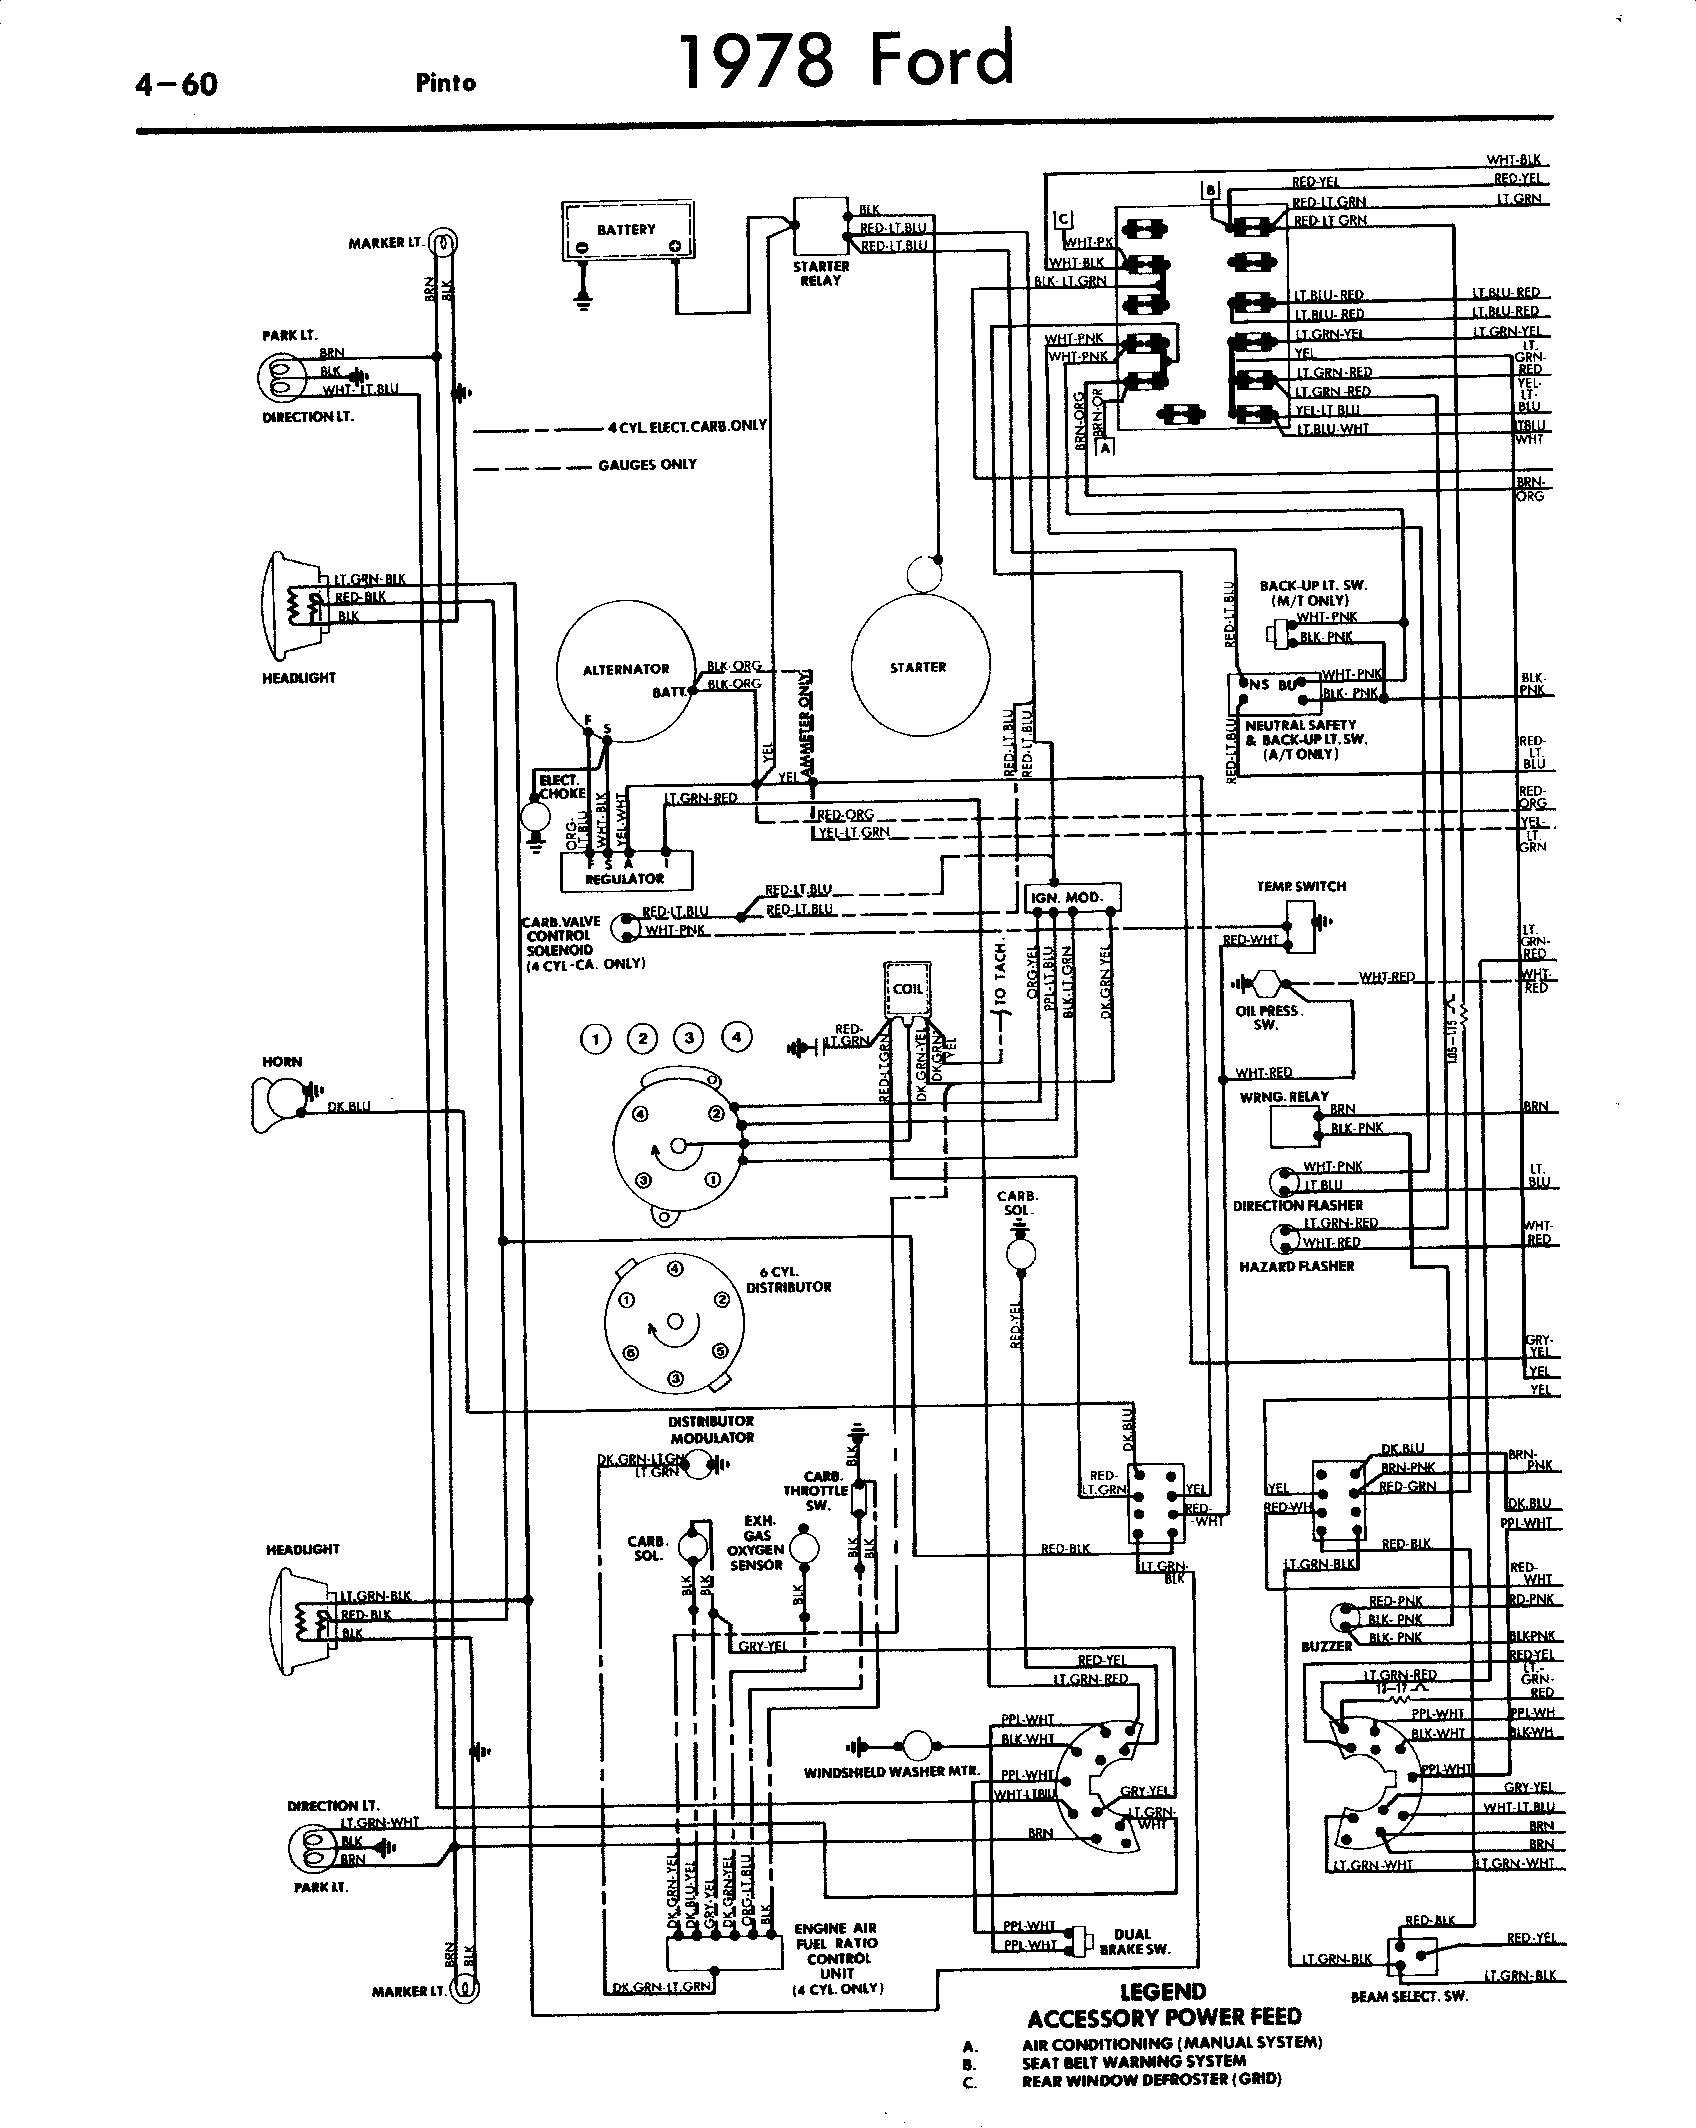 hight resolution of 1995 ford f150 5 0 engine diagram 01 7 3 engine wire diagram wiring info